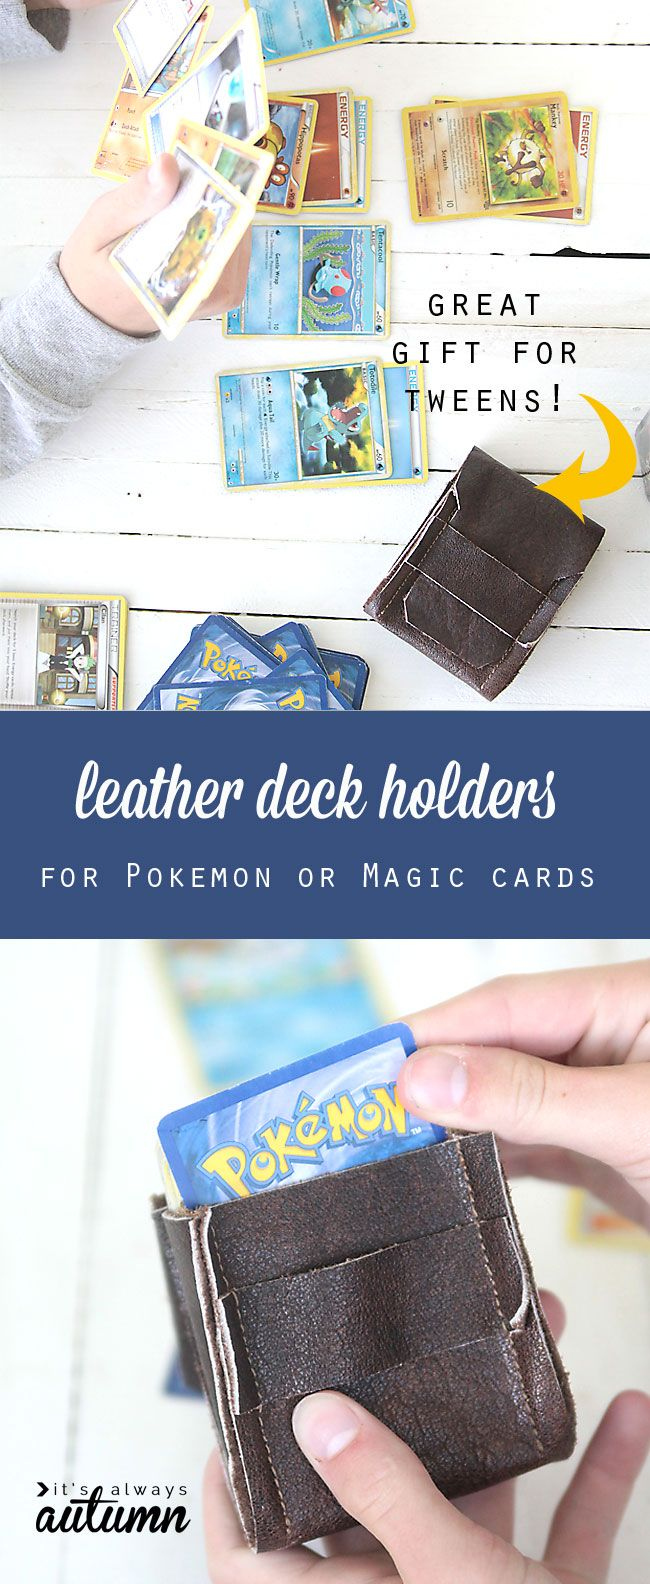 Diy Leather Deck Holders For Pokemon Or Magic Cards {great Tween Gift